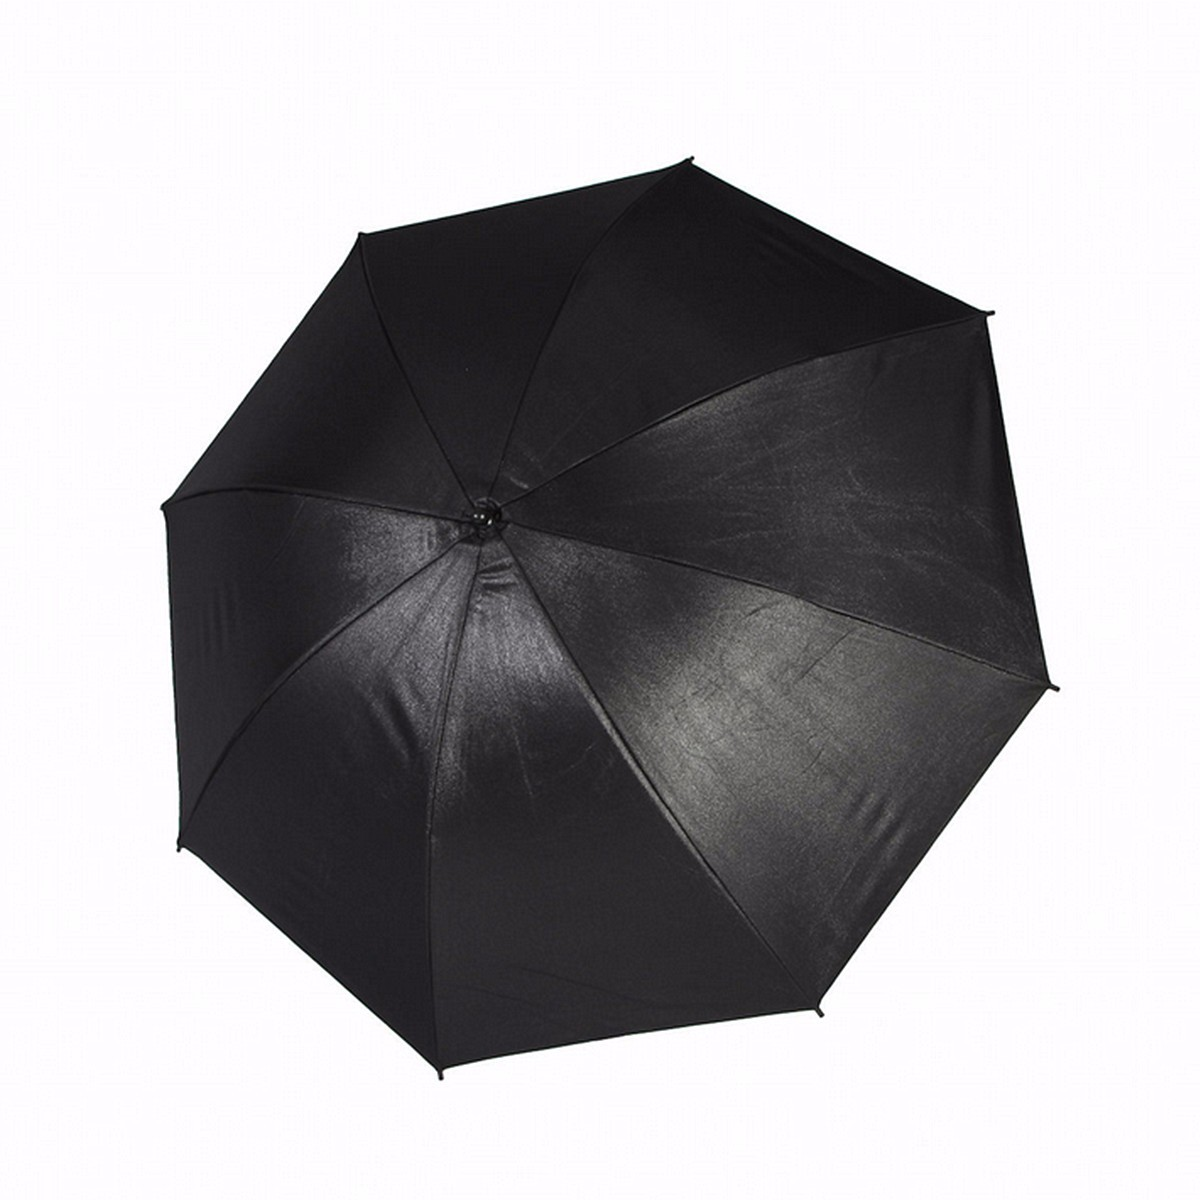 Reflective Umbrella Softbox: 110cm 43 Inch Black Silver Reflective Umbrella Reflector